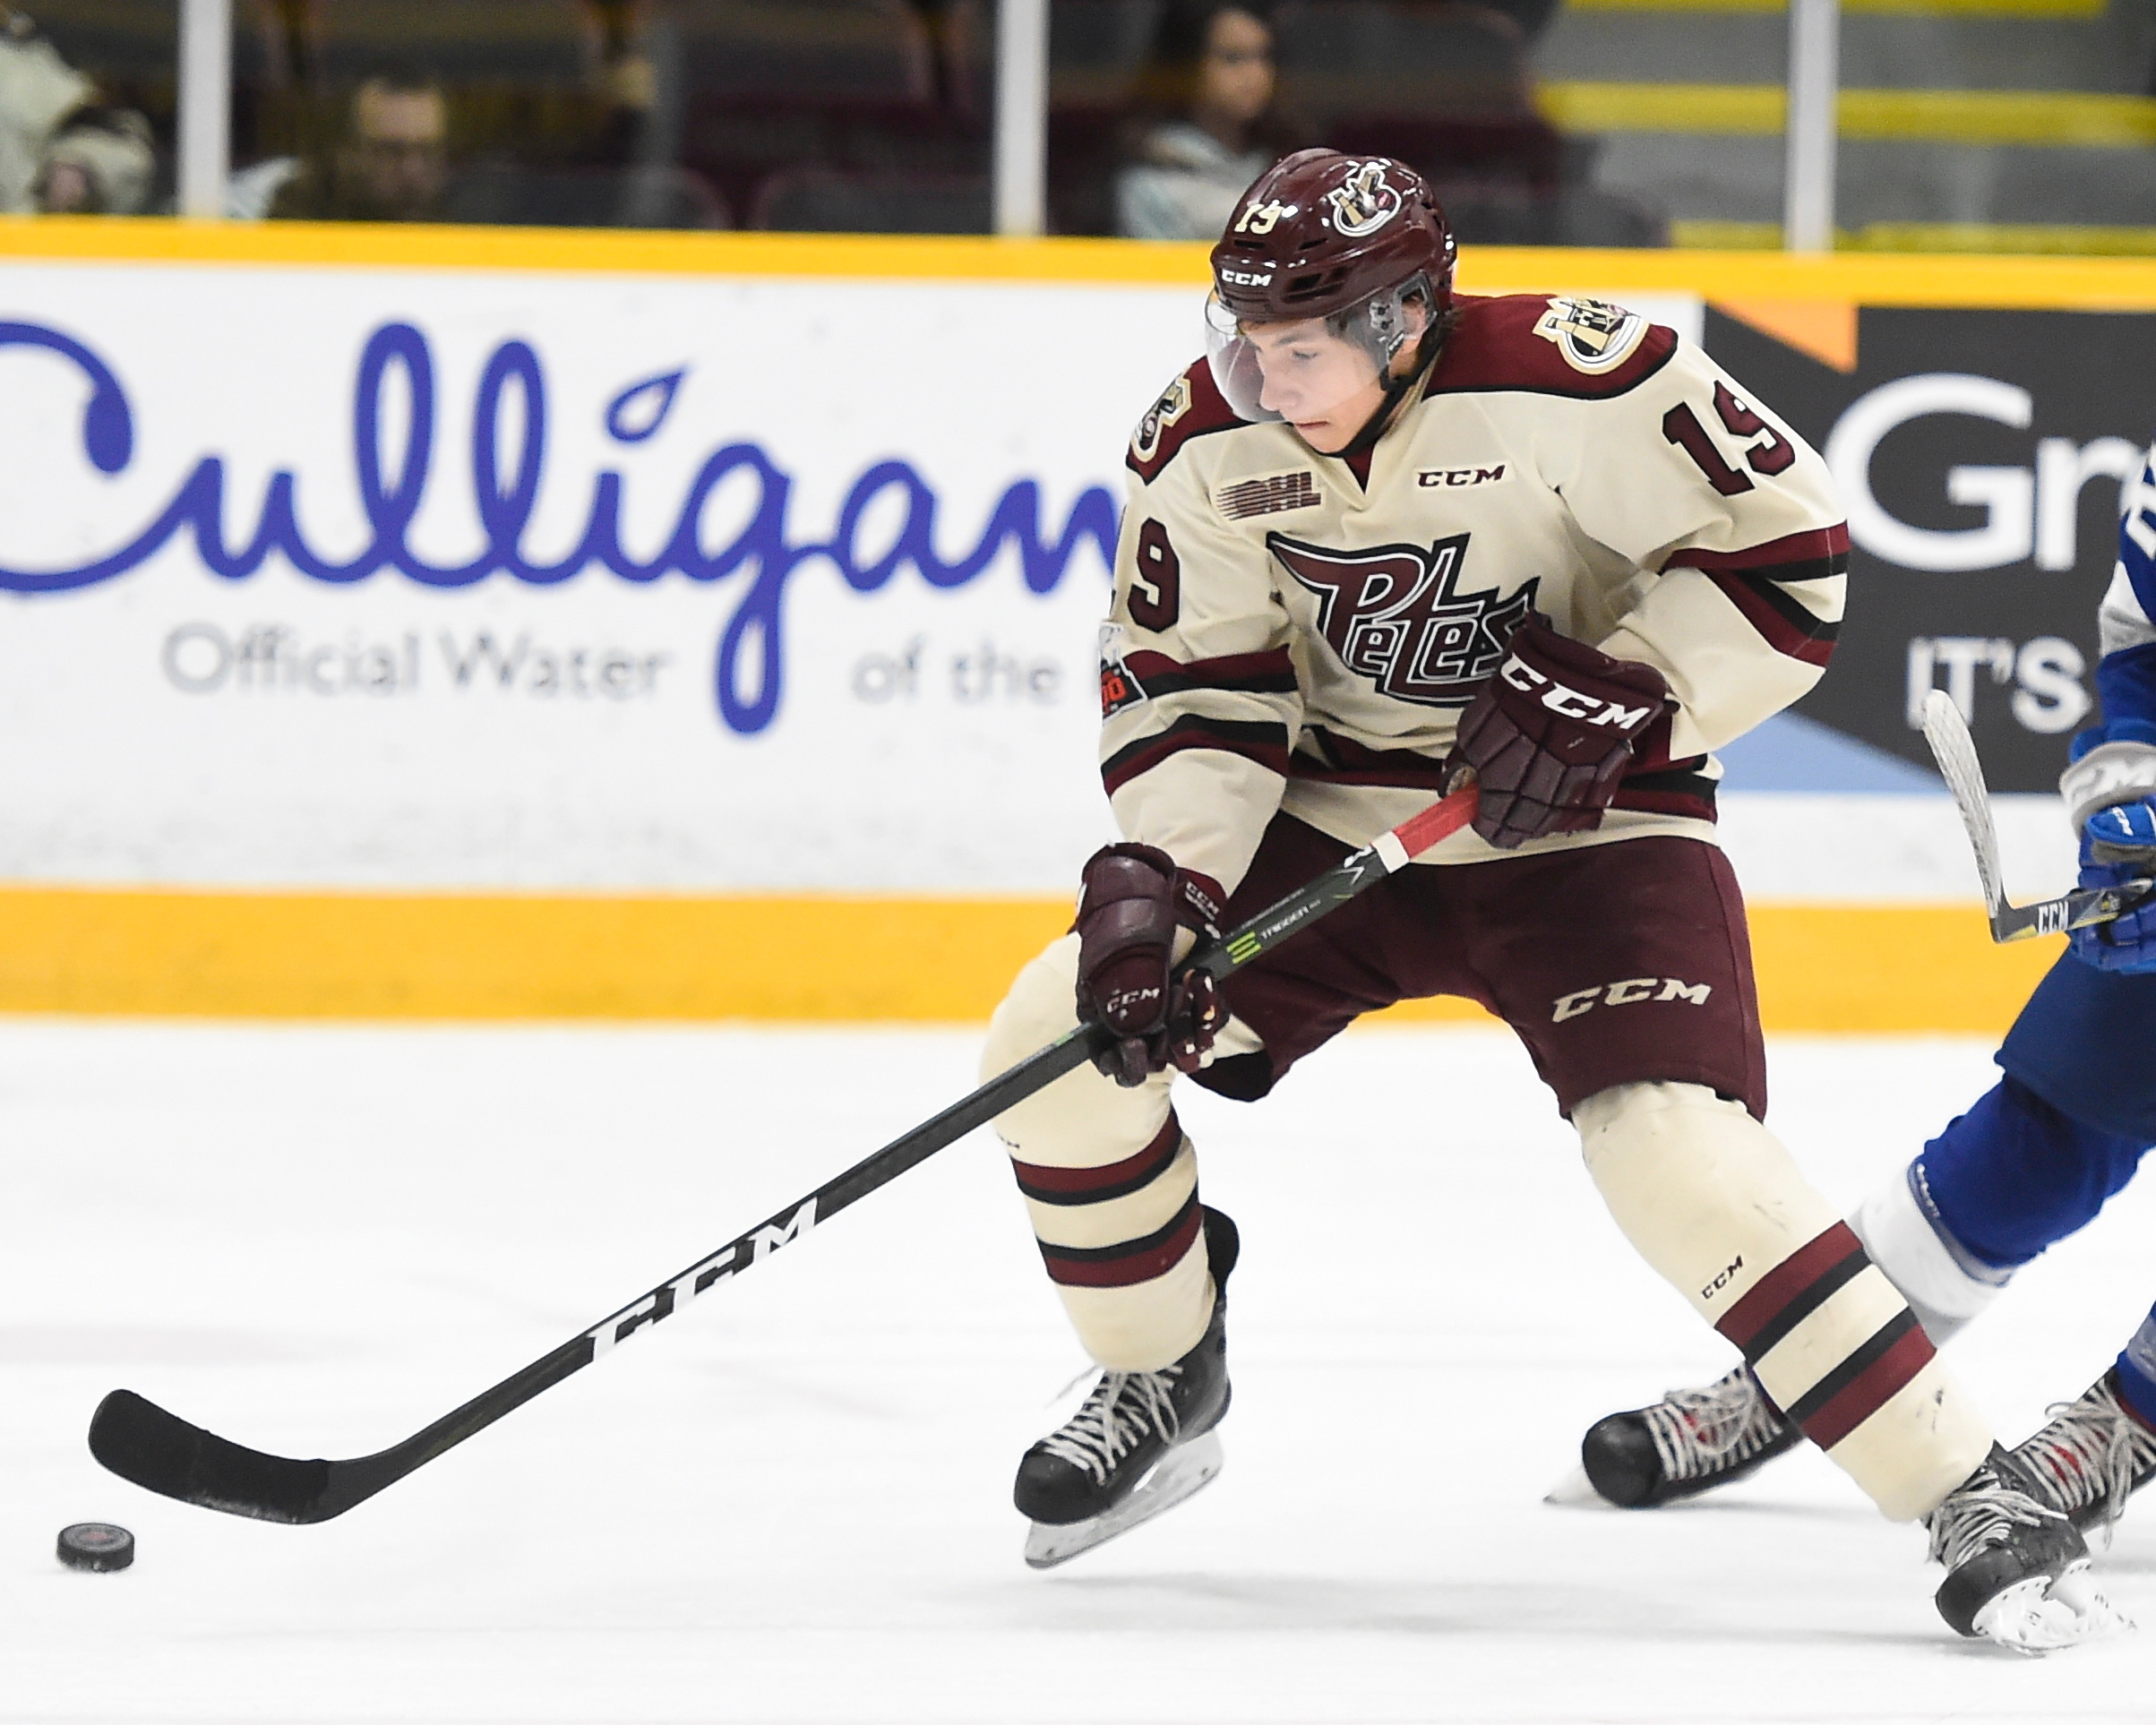 OHL: 2018 NHL Draft Prospects - Semyon Der-Arguchintsev Is The Youngest Player In The 2018 NHL Entry Draft